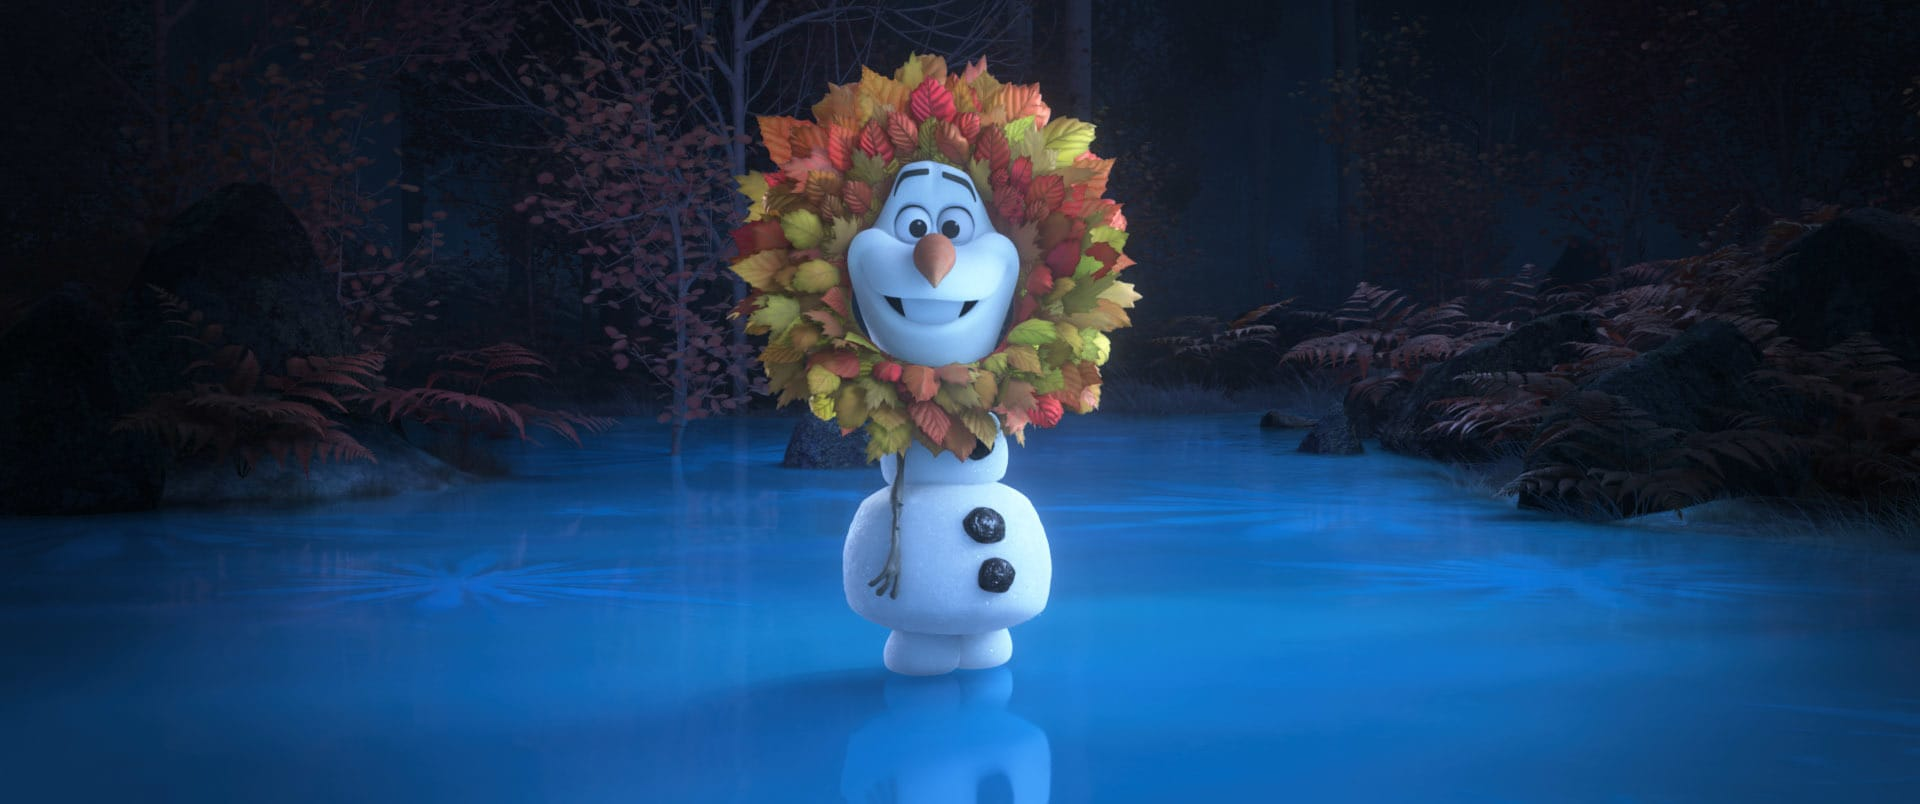 """In Walt Disney Animation Studios' new series of shorts """"Olaf Presents,"""" Olaf steps into the spotlight and goes from snowman to showman as he takes on the roles of producer, actor, costumer and set builder for his unique """"retelling"""" of five favorite Disney animated tales including 1994's Disney Animation classic """"The Lion King."""" In the short, Olaf stars in a variety of roles from Simba and Mufasa to both Pumbaa and Timon. Debuting exclusively on Disney+ Nov. 12, """"Olaf Presents"""" features the voice of Josh Gad as Olaf. Disney animator Hyrum Osmond directs, and Jennifer Newfield produces. © 2021 Disney. All Rights Reserved."""